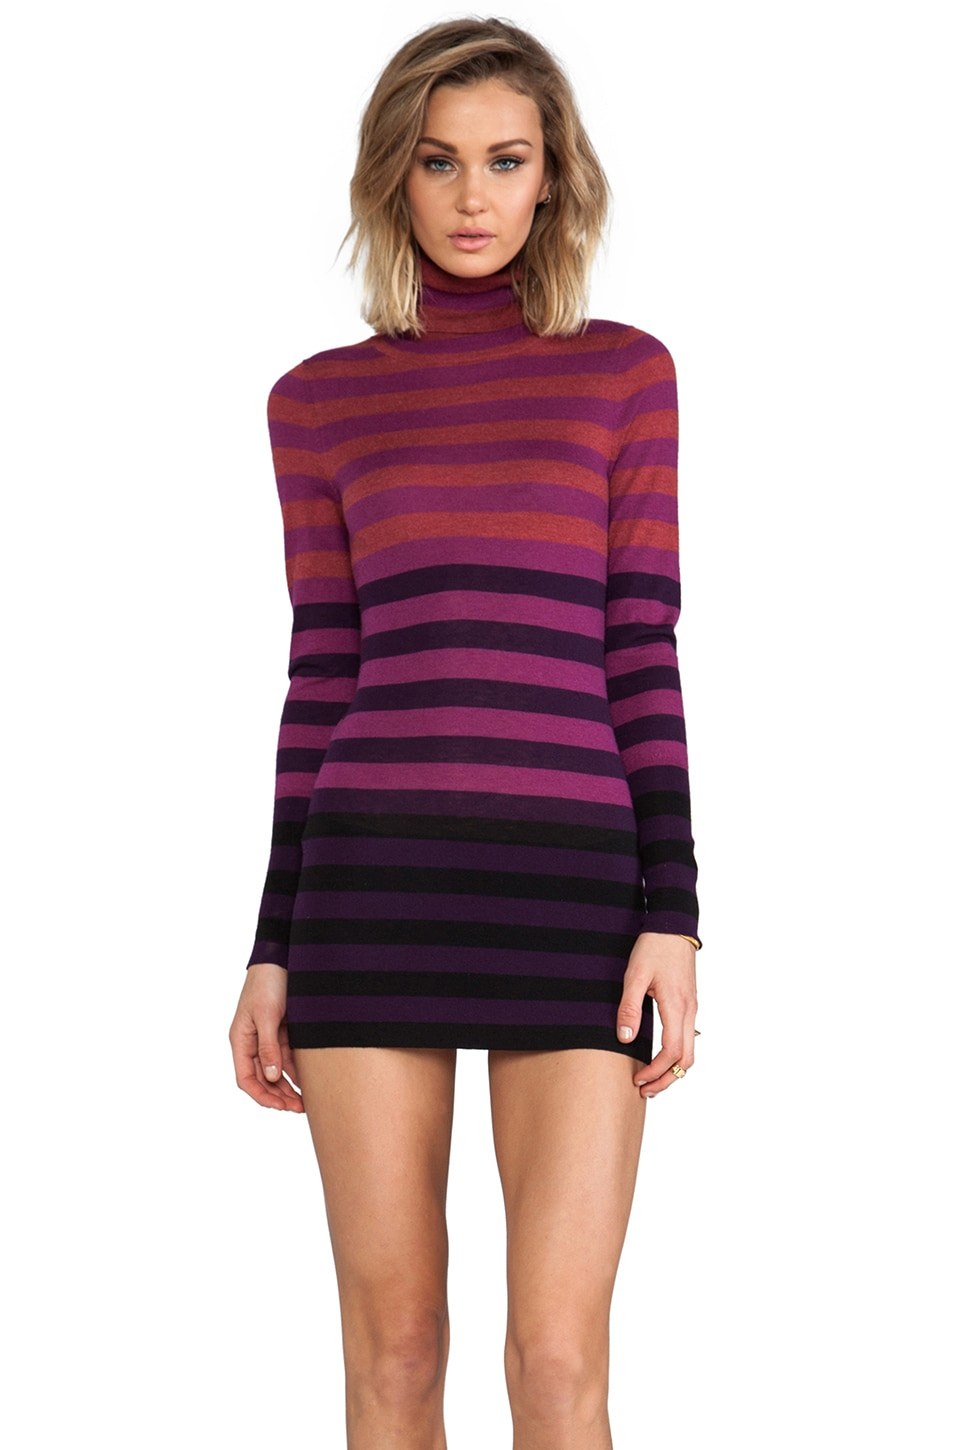 Autumn Cashmere Striped Fitted Tissue Cashmere Turtleneck Tunic Sweater Dresses in Black/Pomegranate Combo